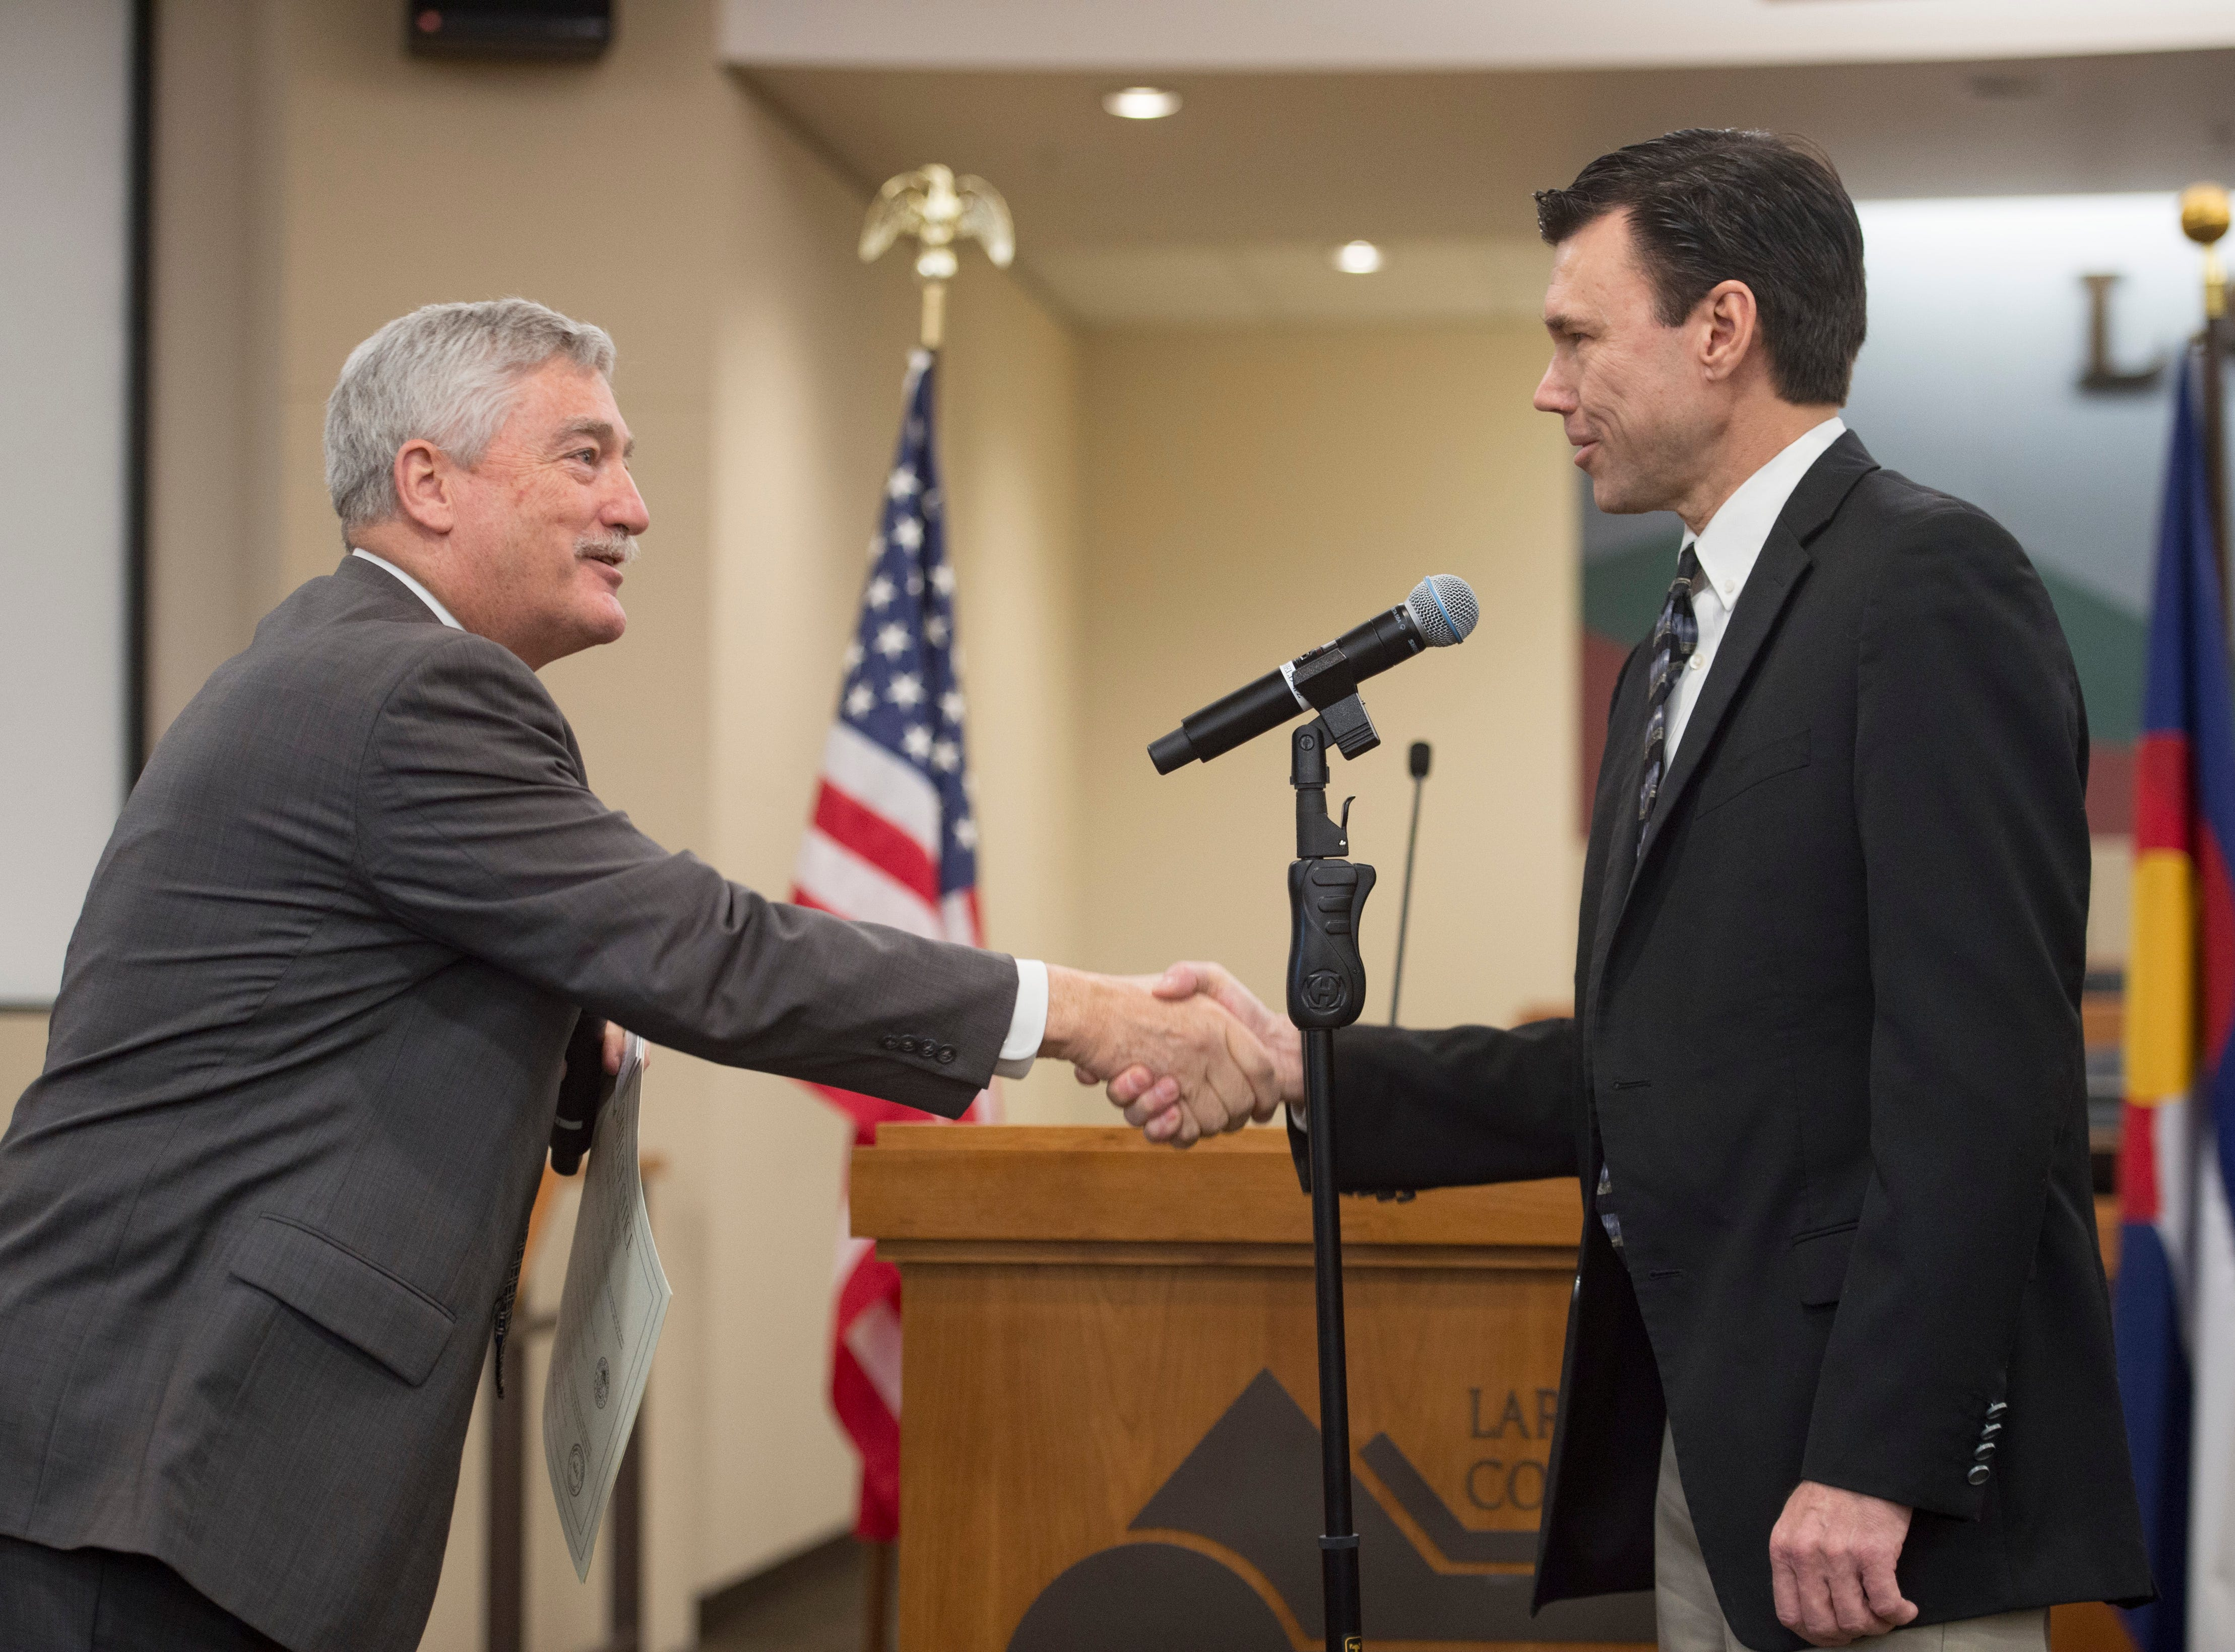 Judge Stephen Howard shakes hands with Larimer County Assessor Bob Overbeck after he is sworn in at the Larimer County Courthouse on Tuesday, January 8, 2019.